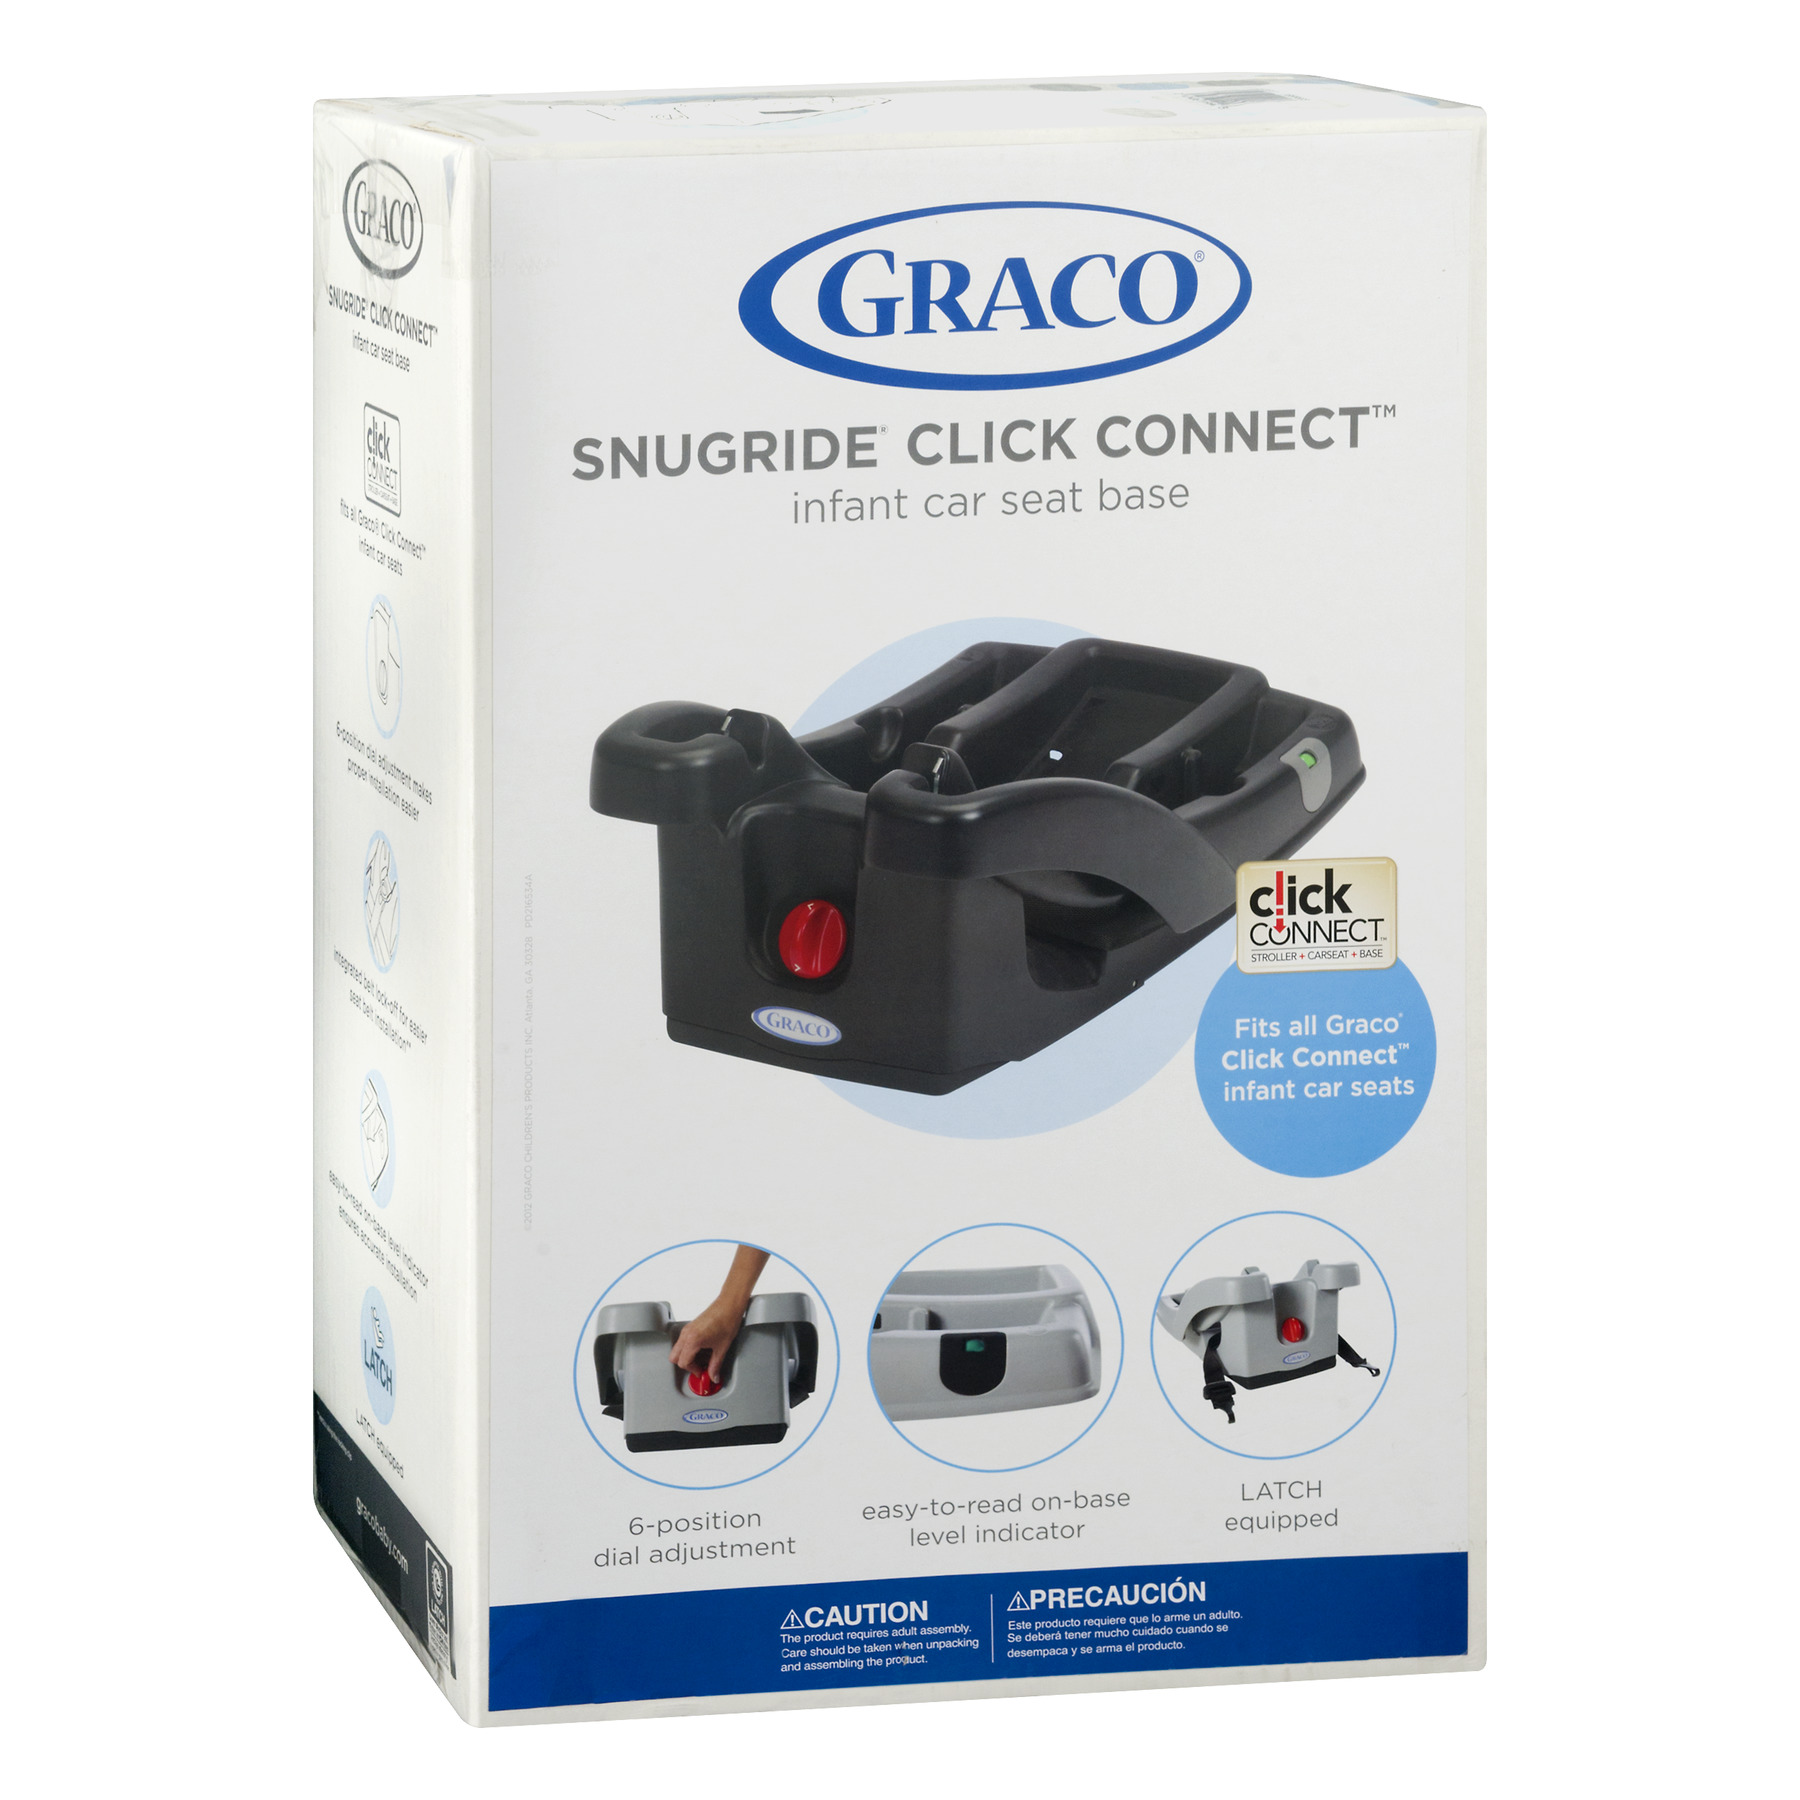 Graco SnugRide Click Connect LX Infant Car Seat Base Black